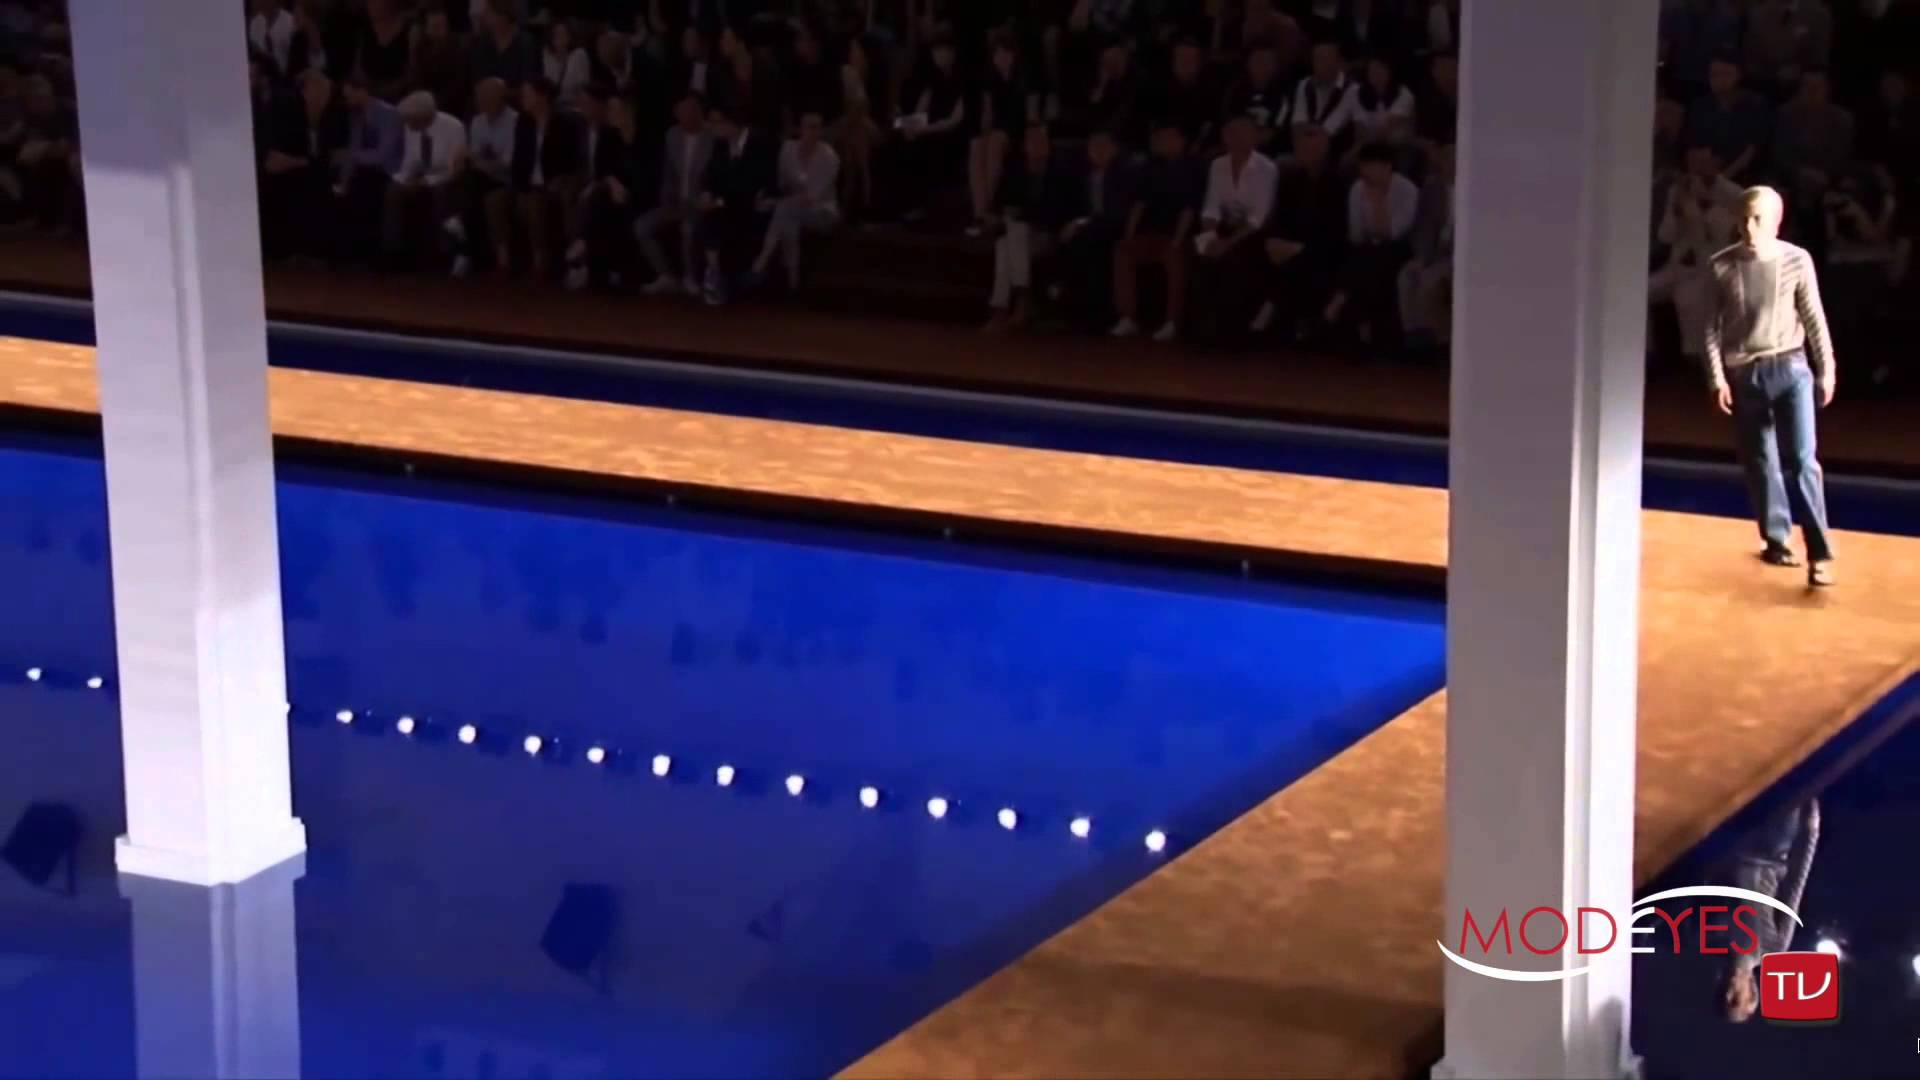 PRADA MENSWEAR SUMMER 2015 MILAN FASHION SHOW HD